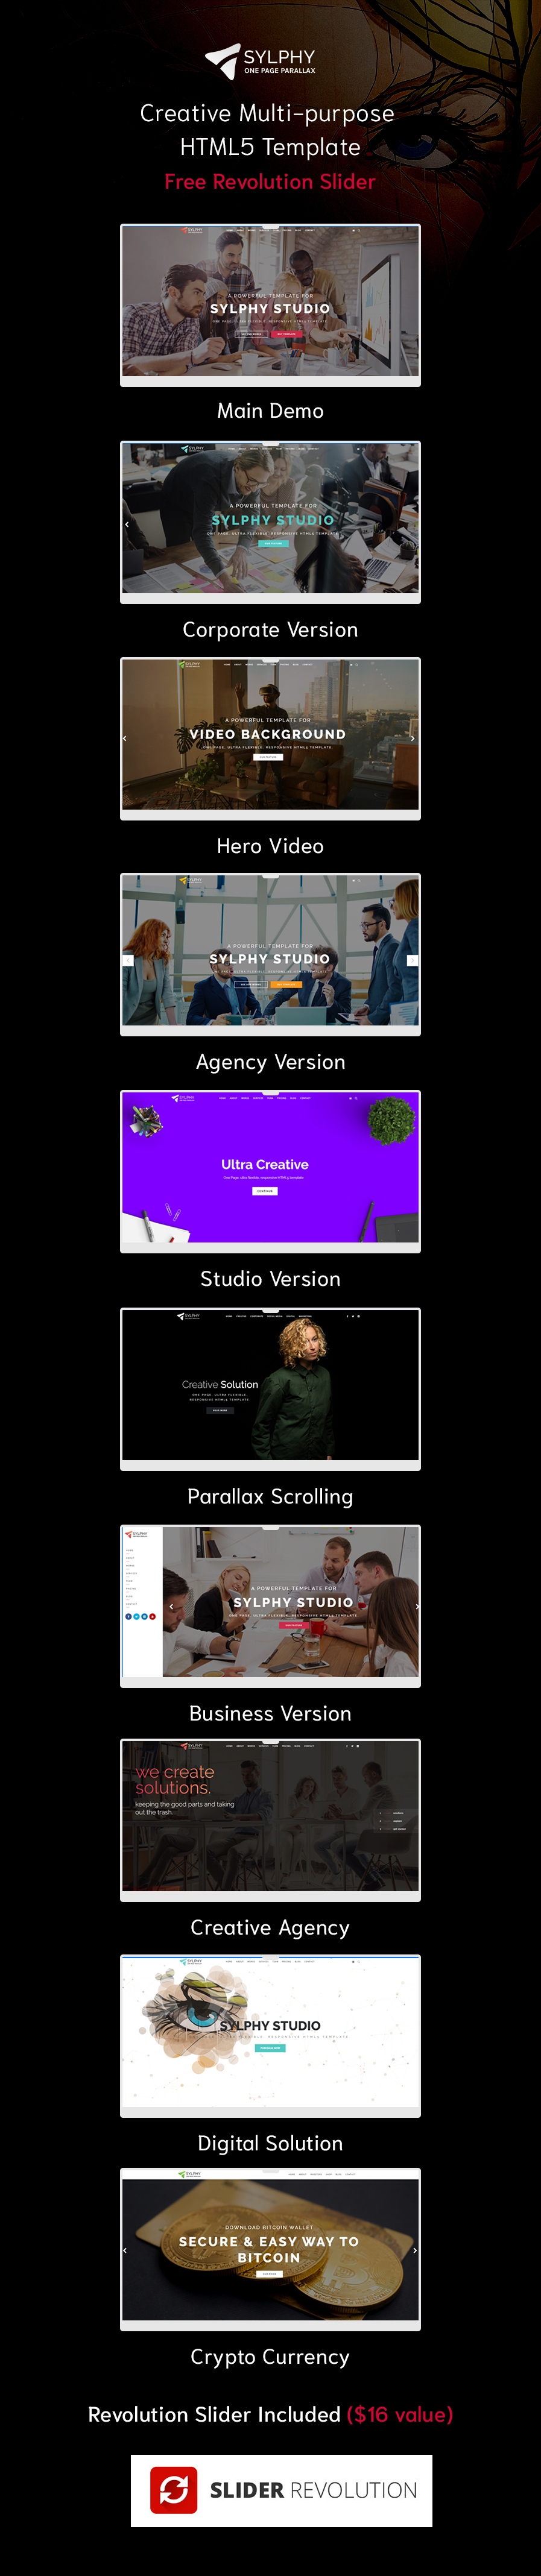 Sylphy - Creative Multi-purpose HTML5 Template - 1